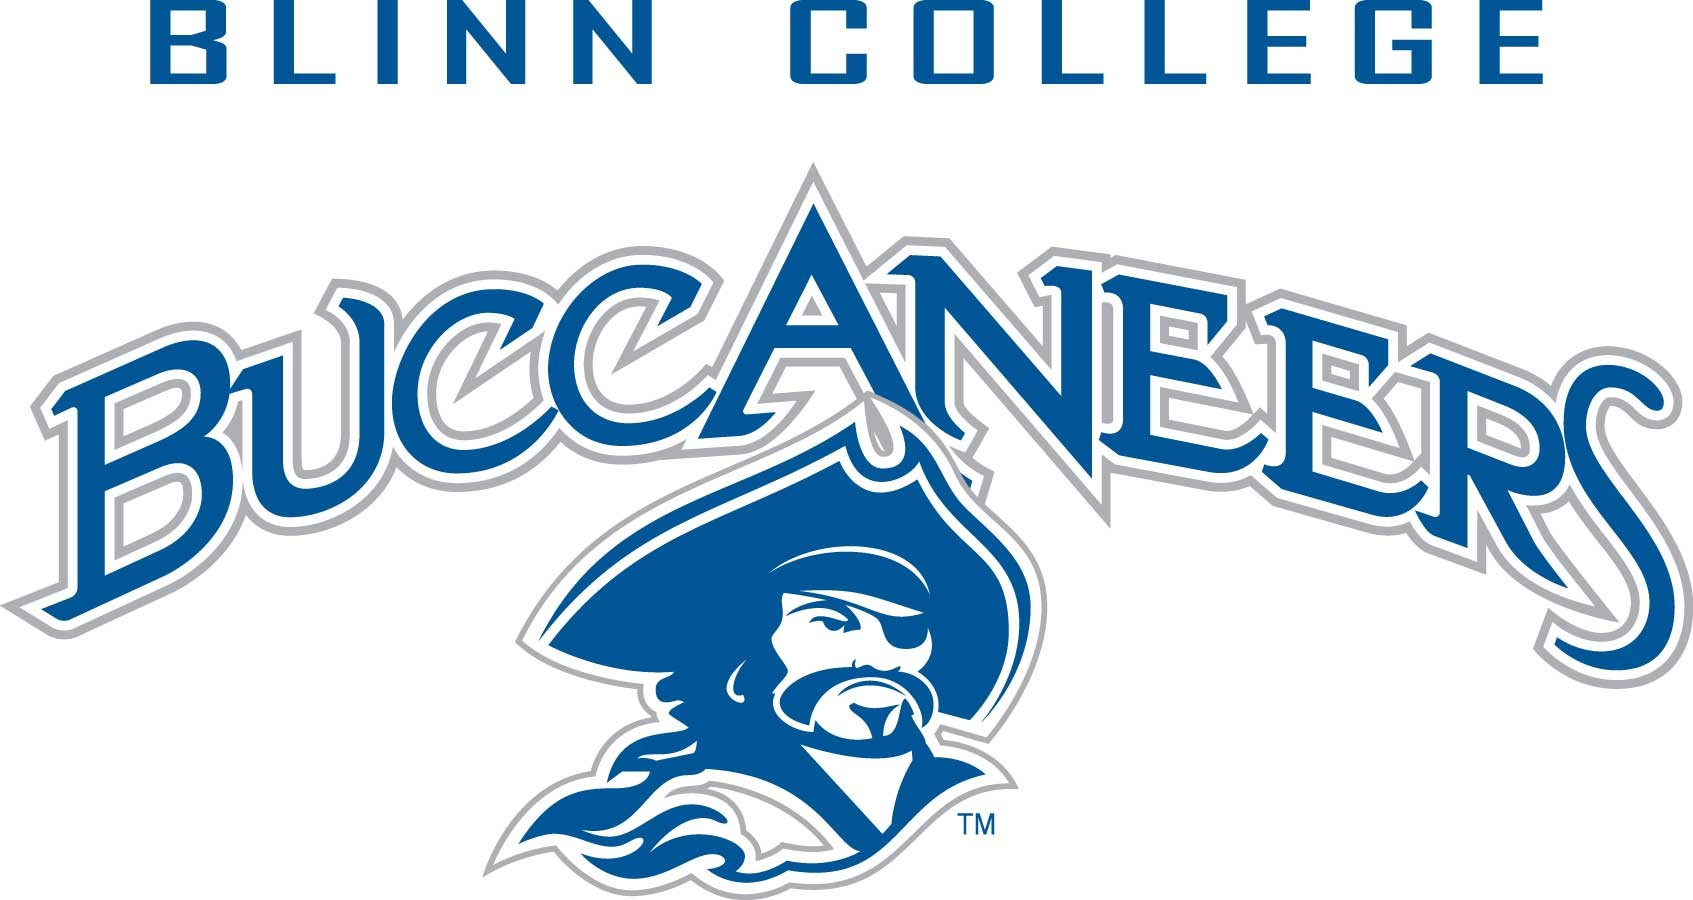 Image result for blinn college logo transparent